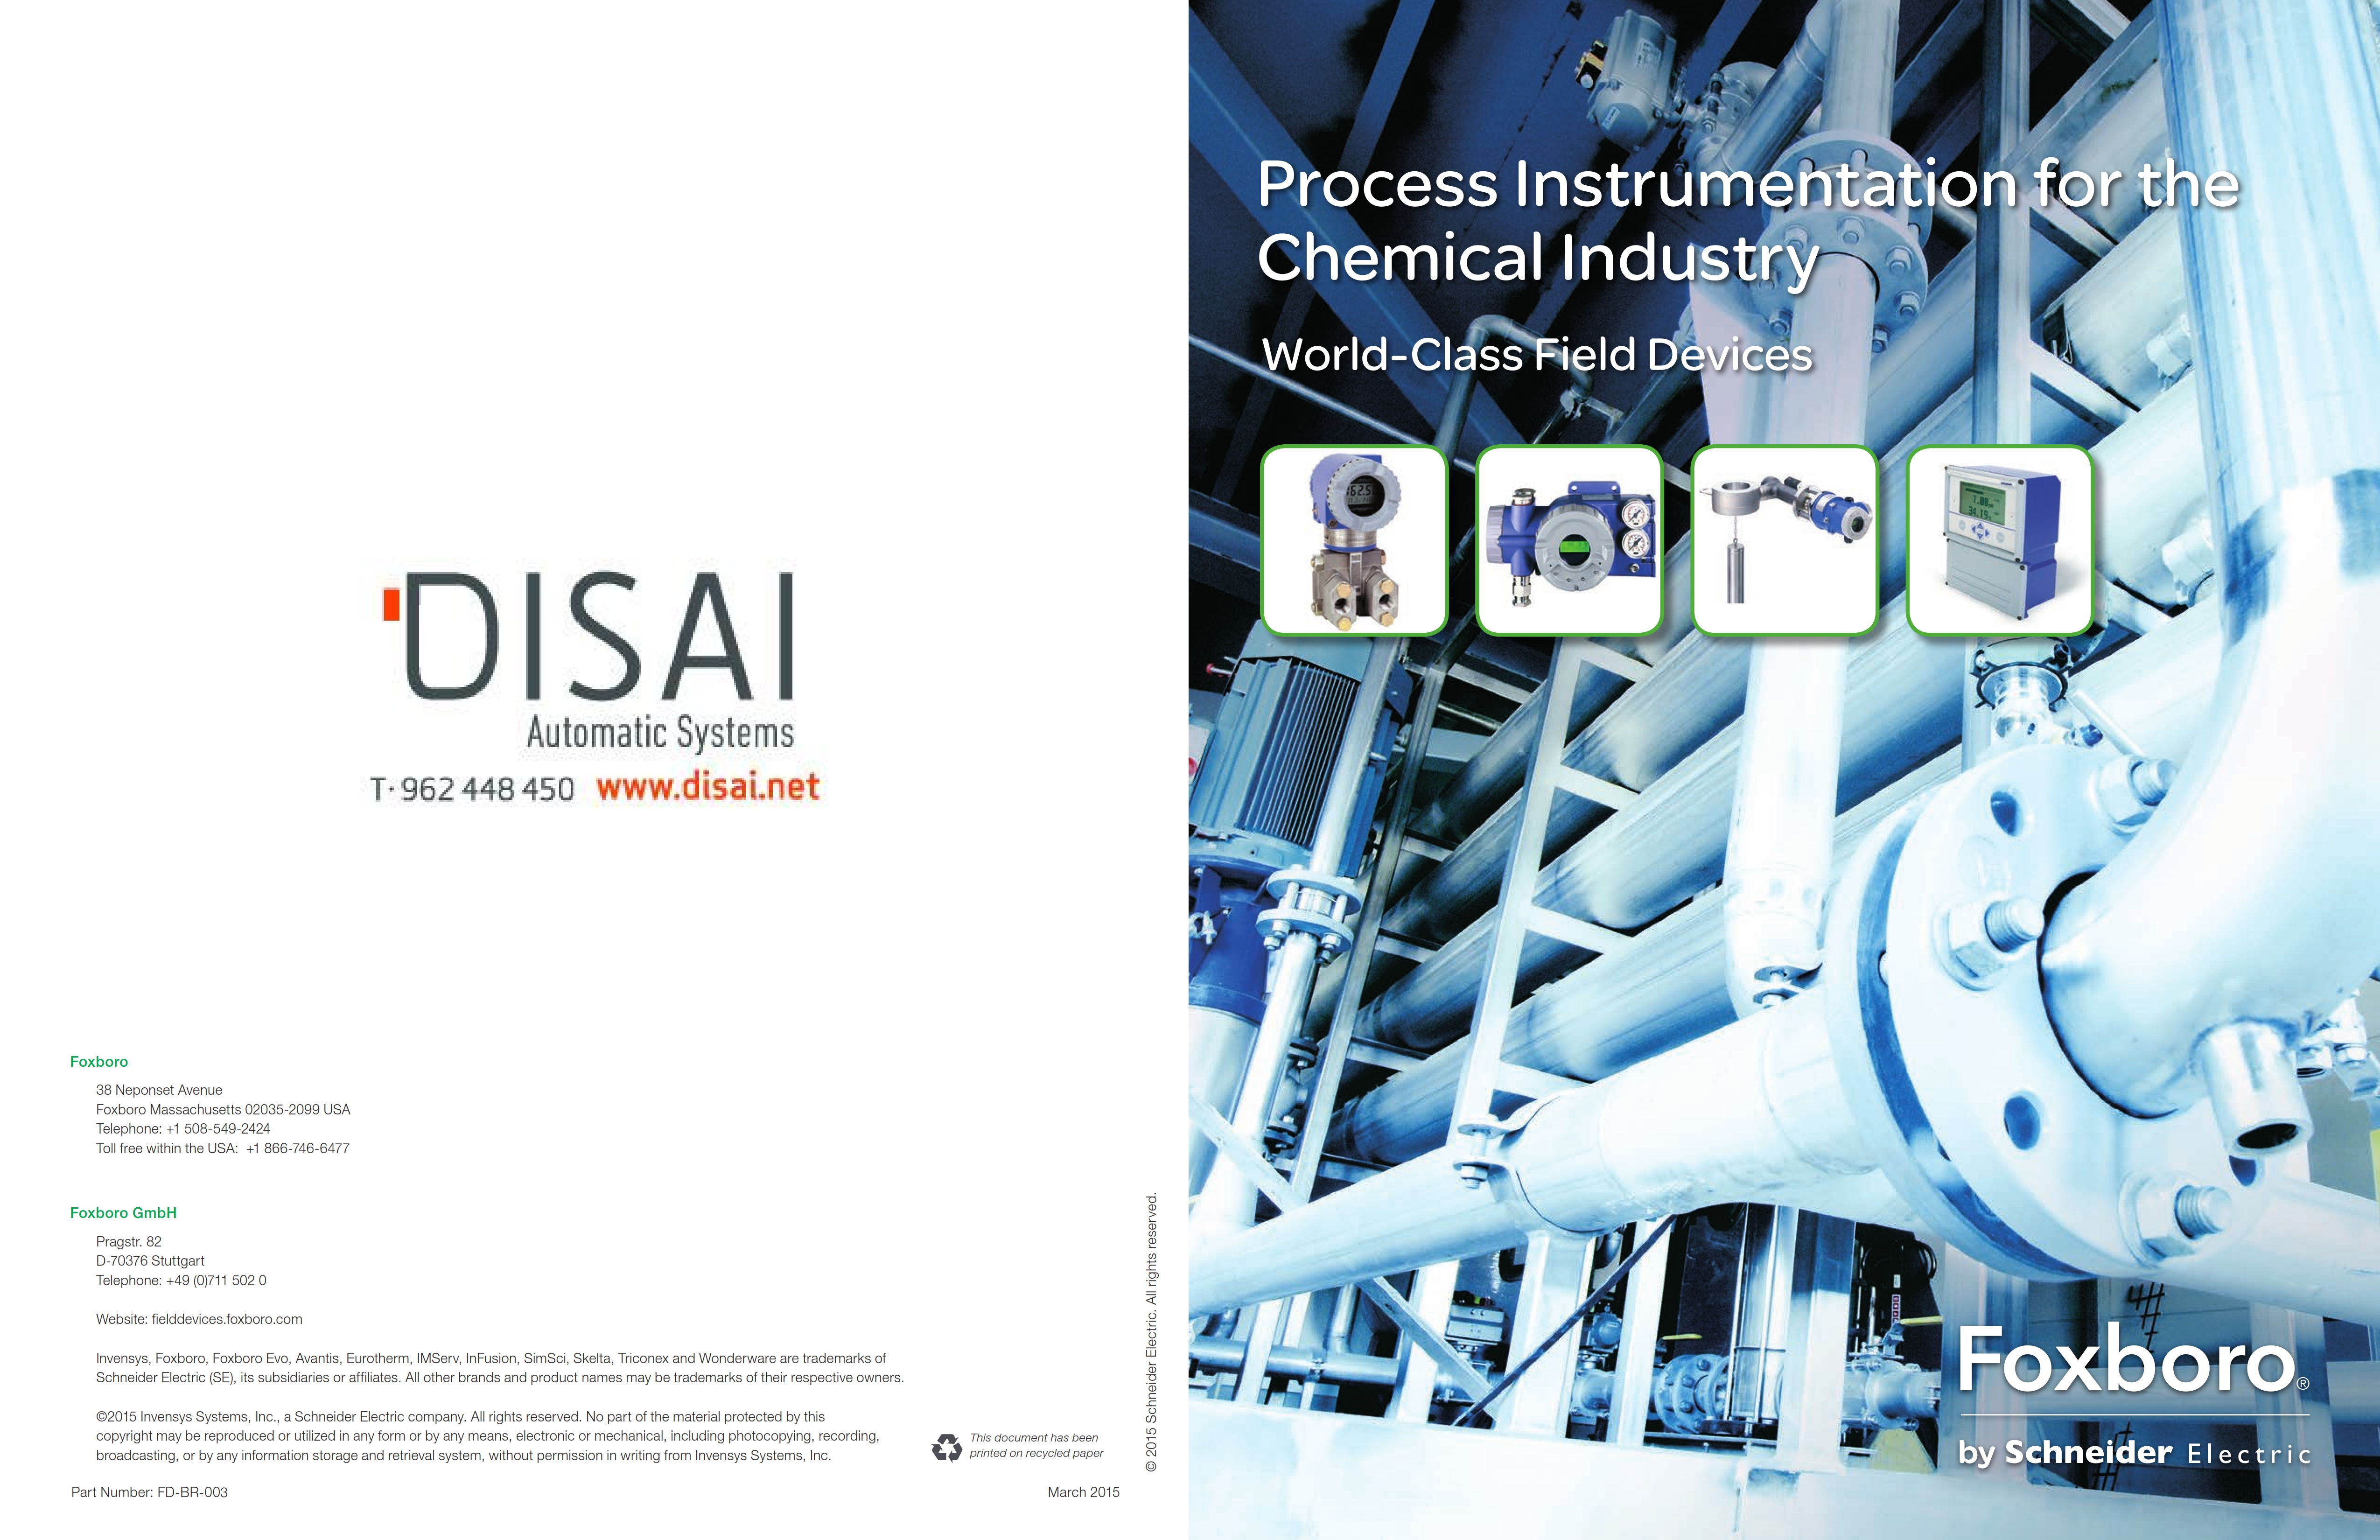 Portada_CAT_ChemicalBrochure_FD-BR-003_001 - Disai Automatic Systems